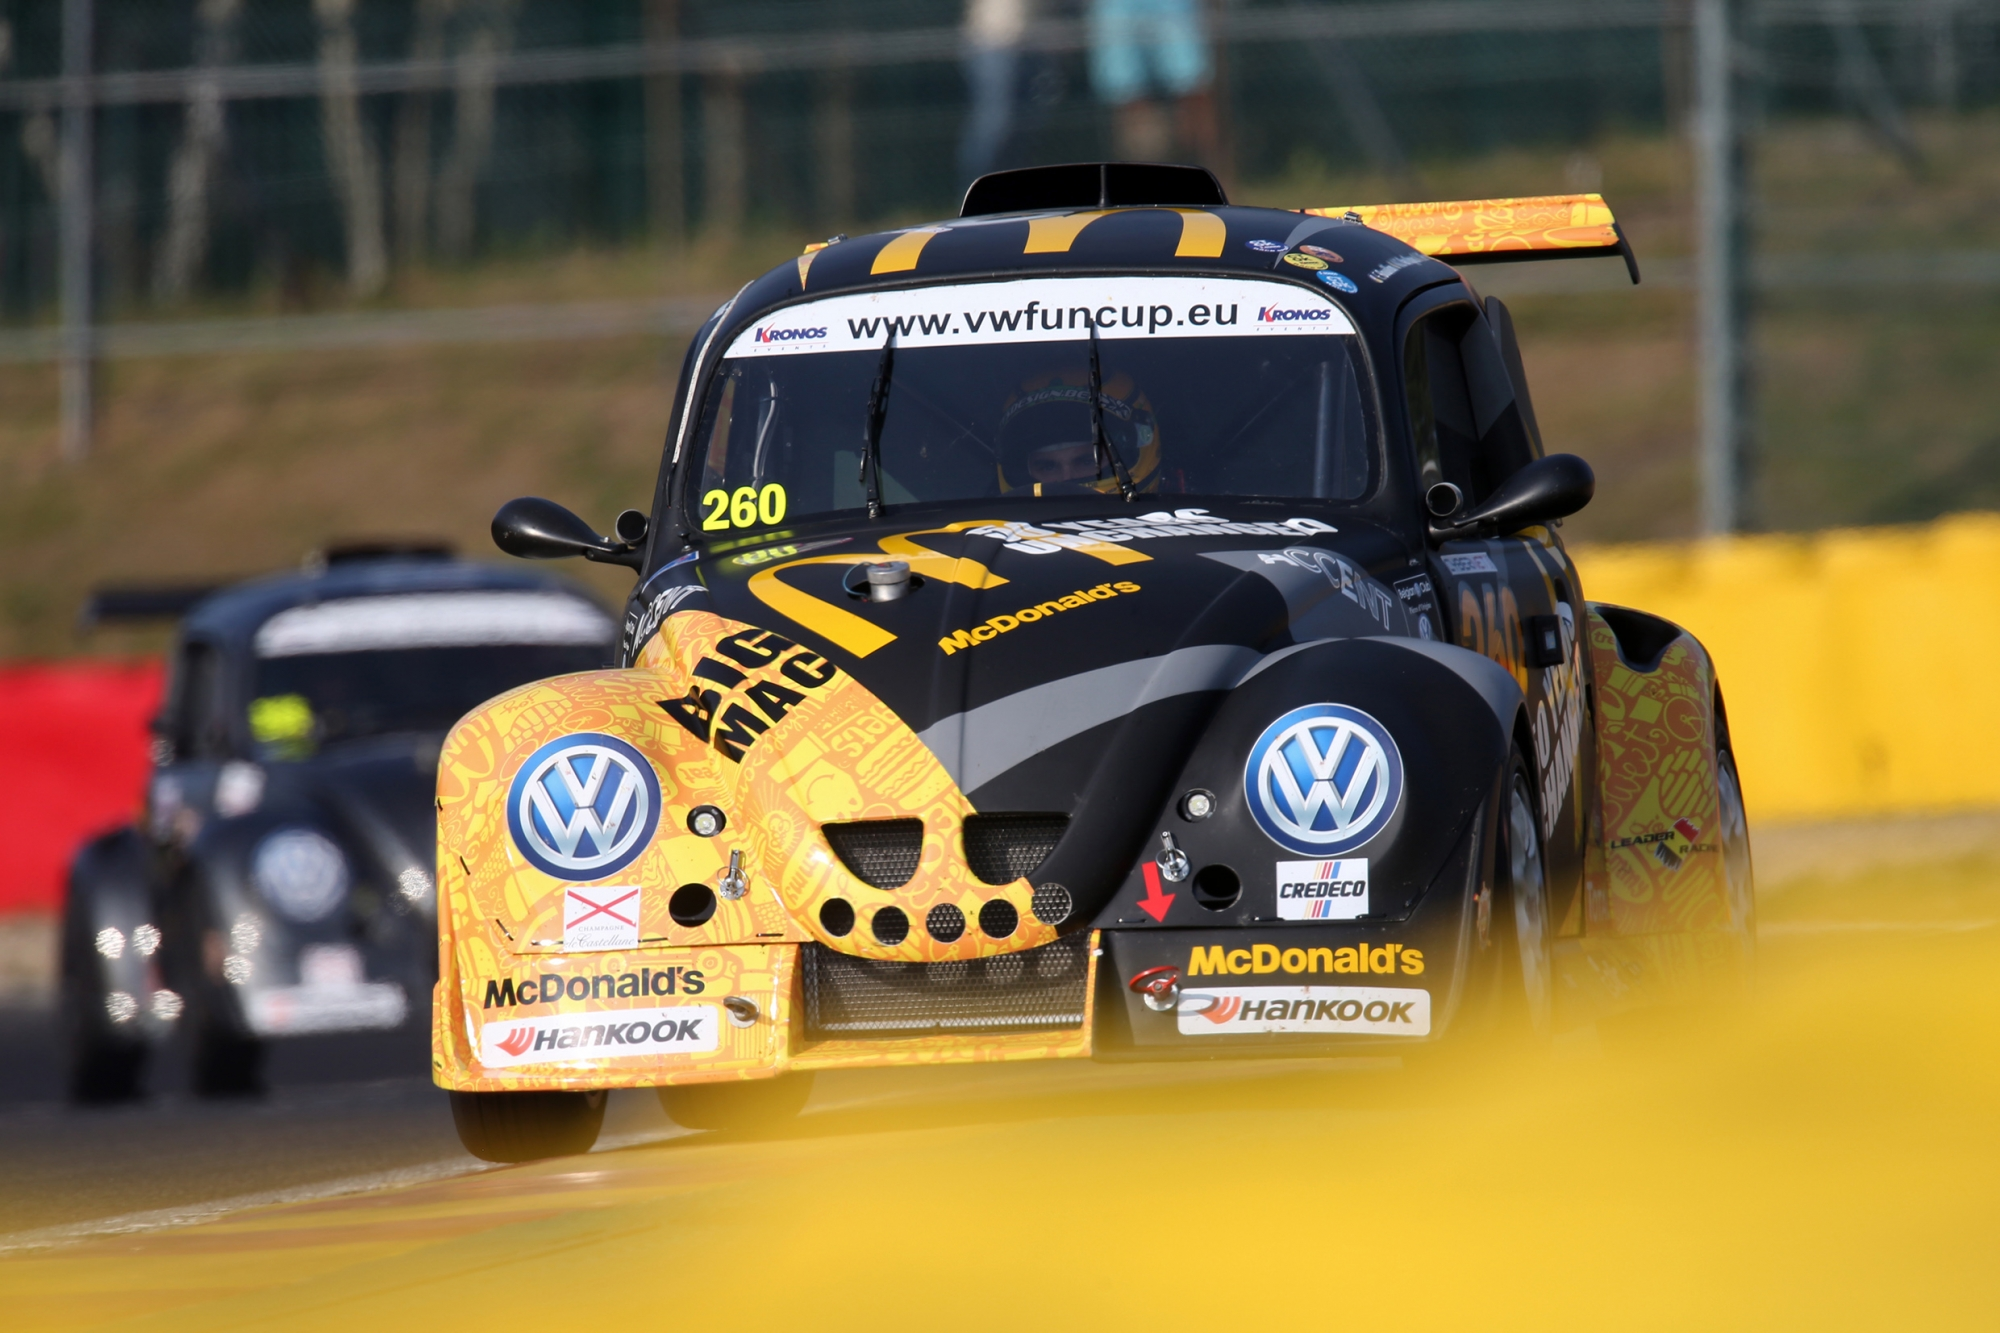 image 1 - La #277 Allure Team en pole position des 25 Hours VW Fun Cup